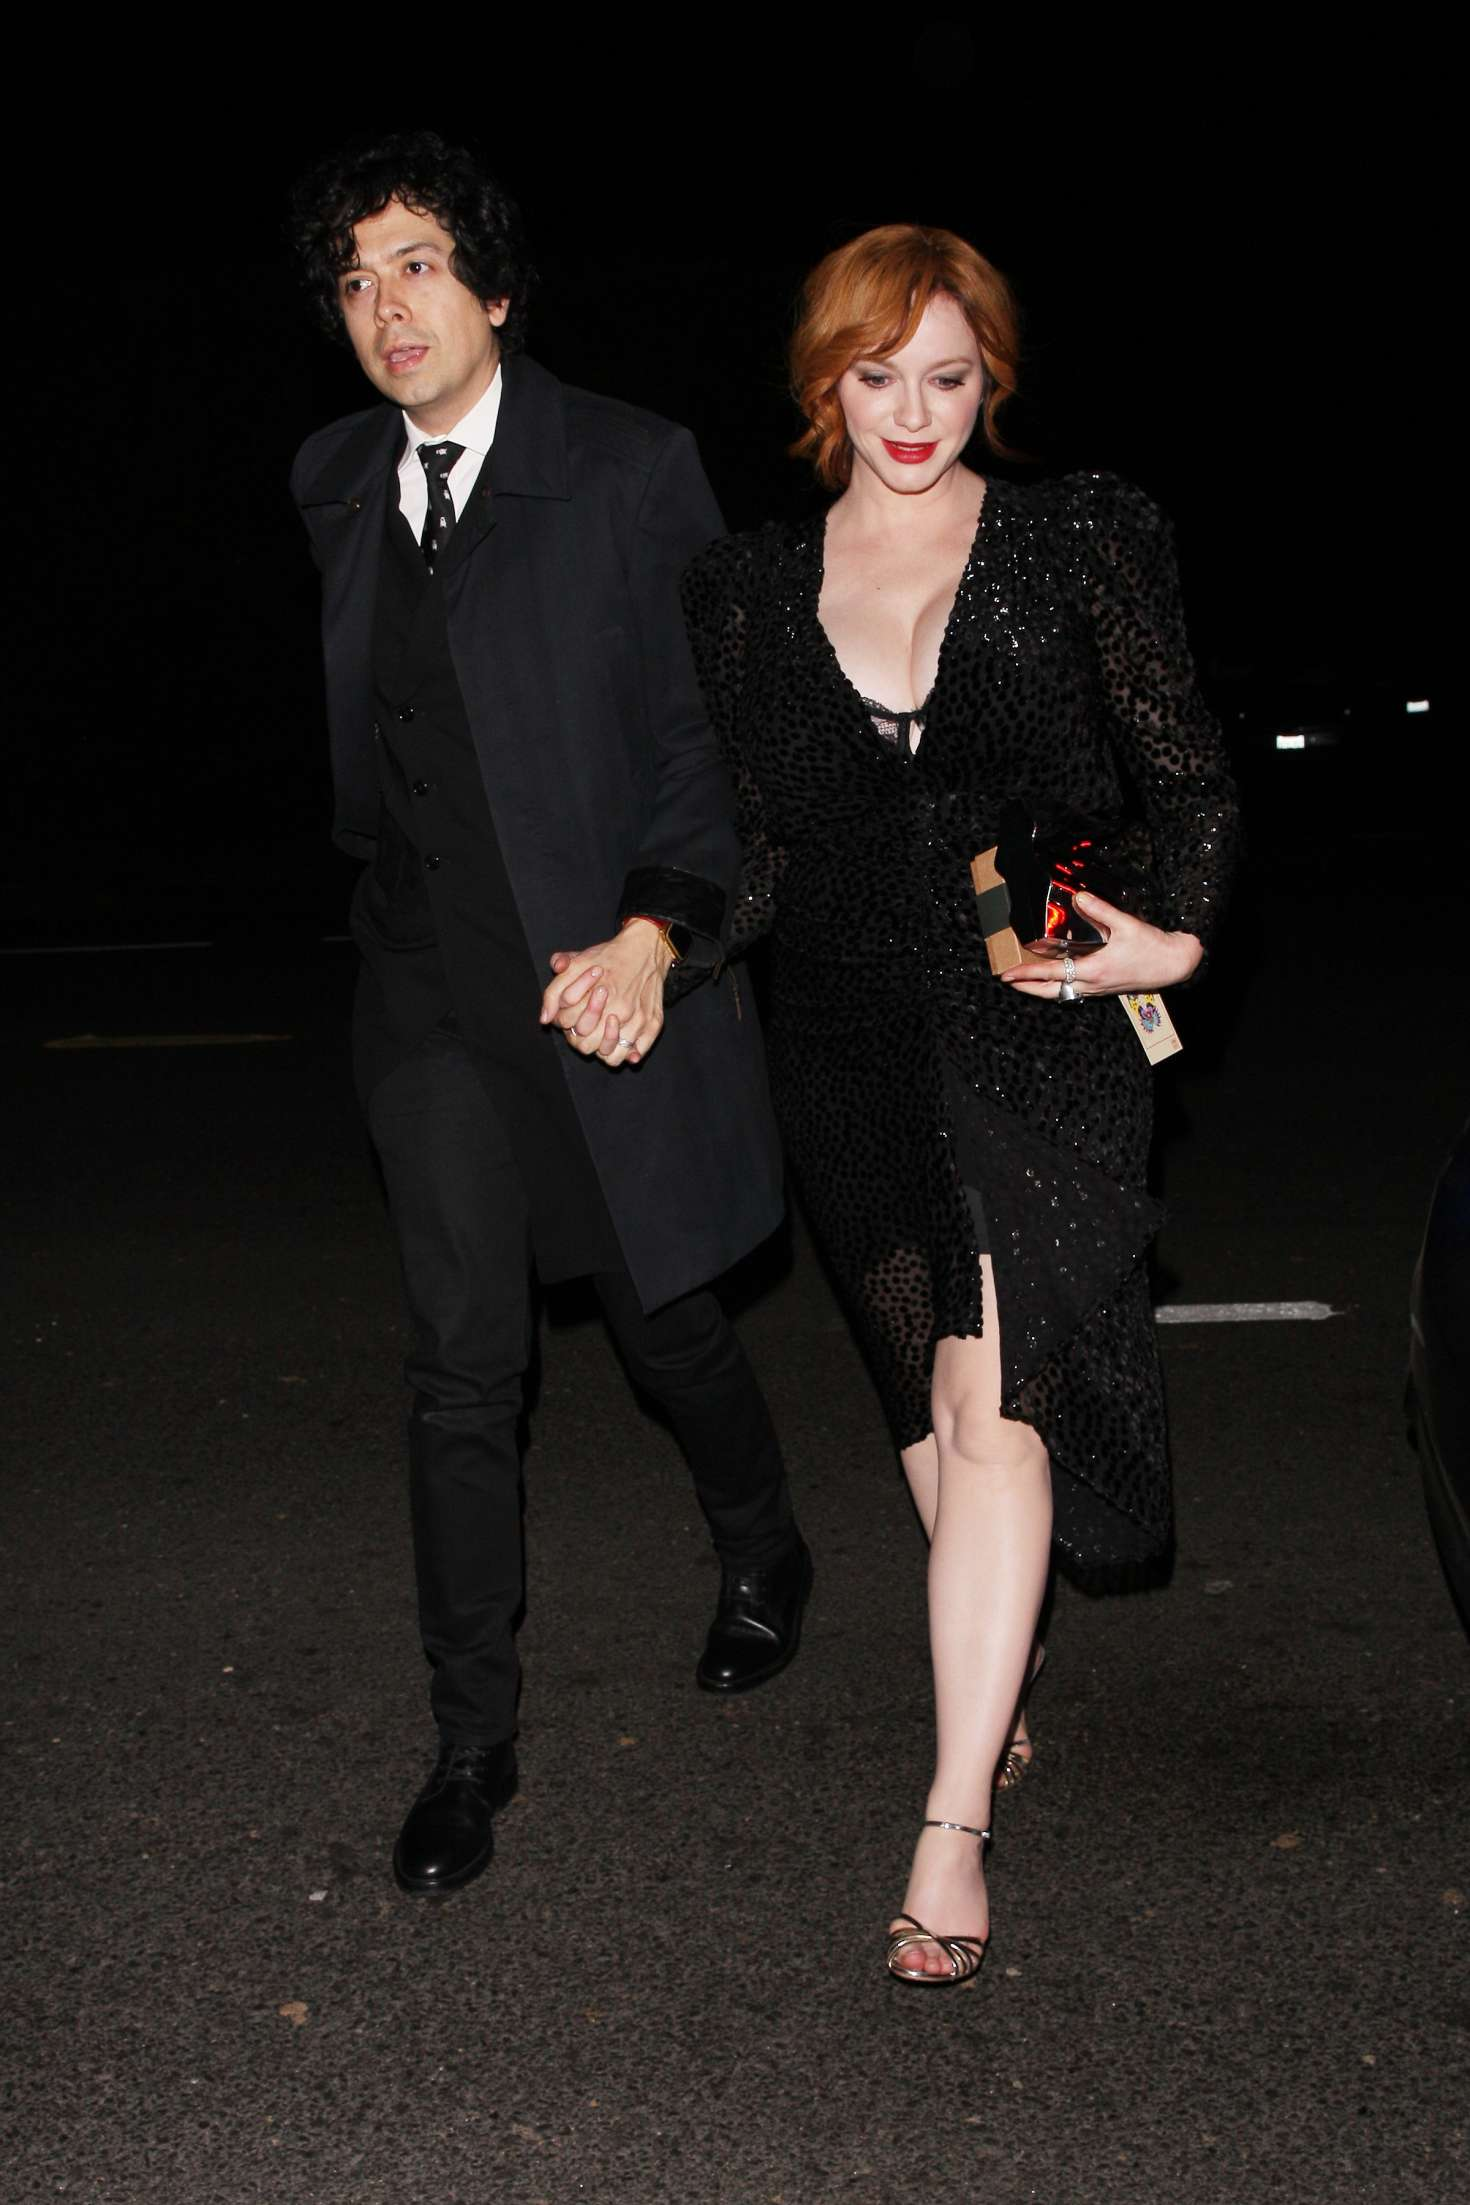 Christina Hendricks - Arriving at Jennifer Klein's holiday party in Los Angeles